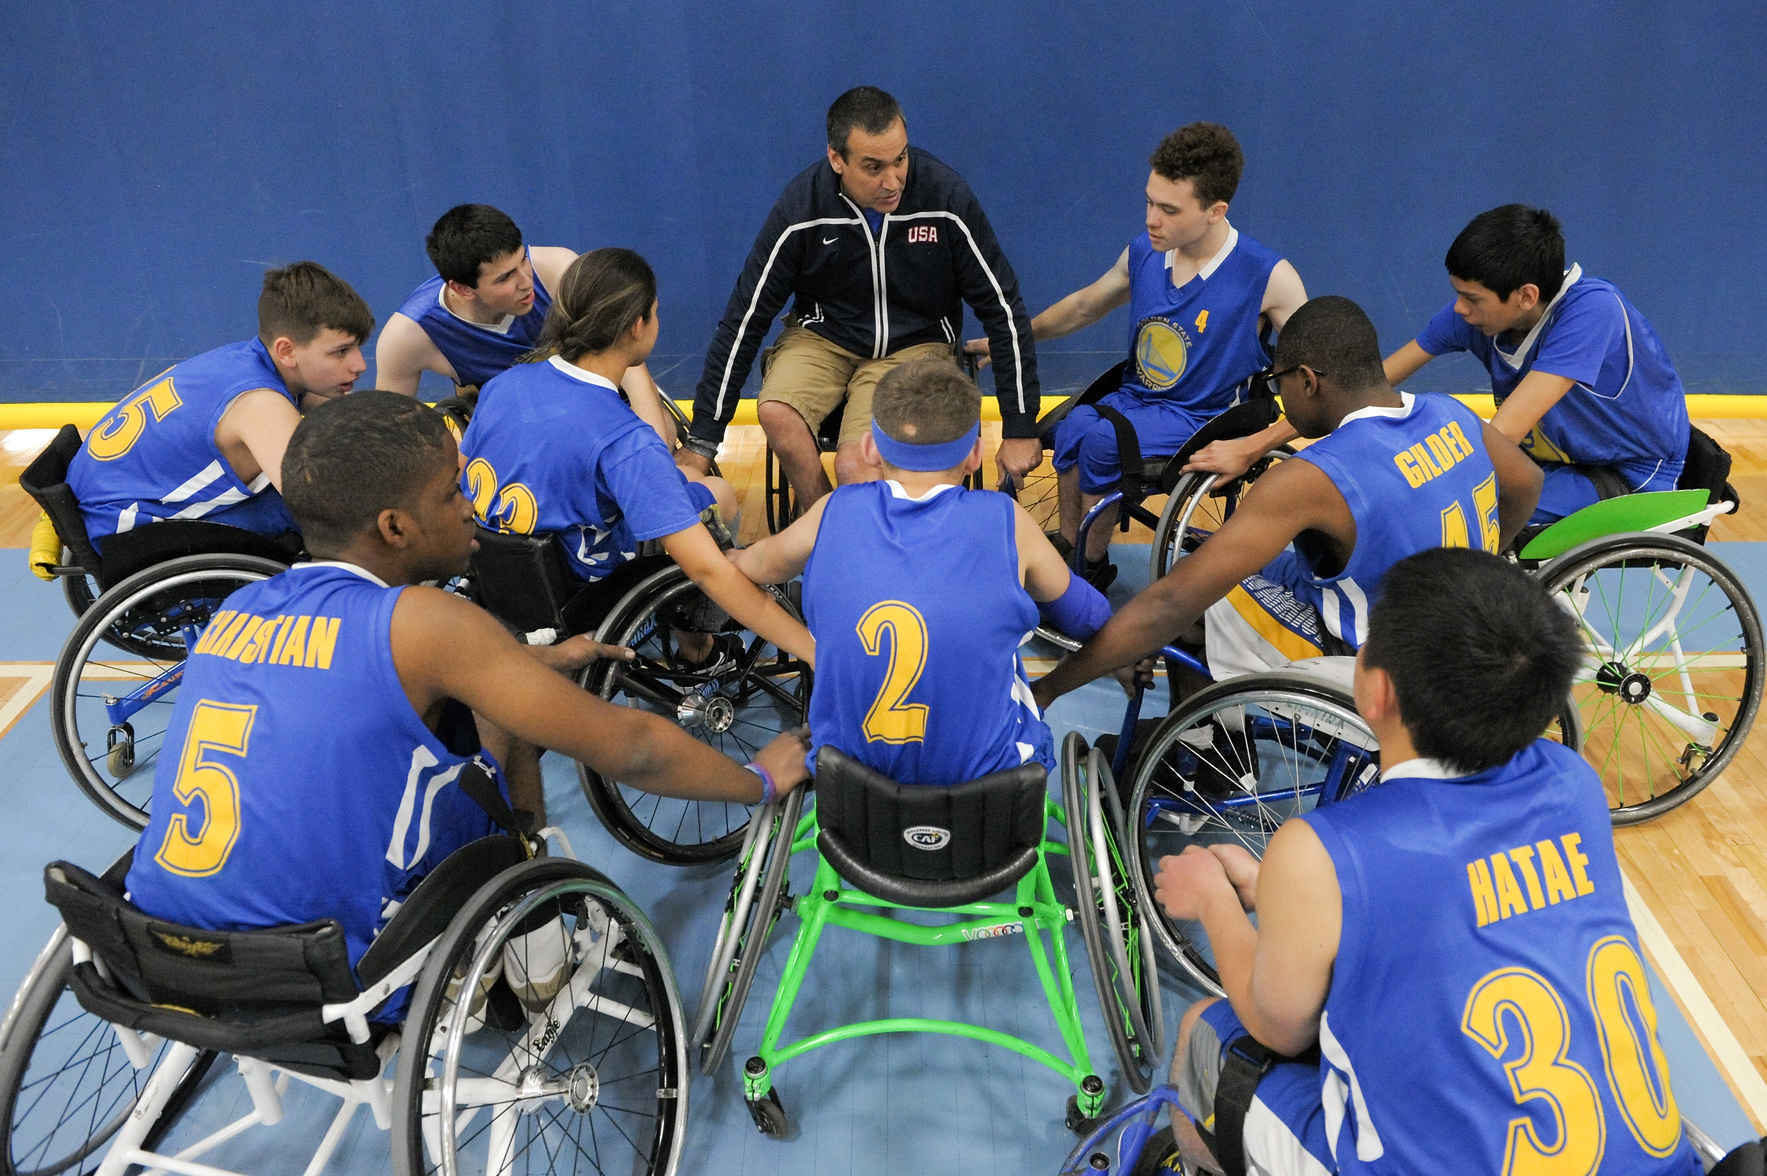 Support sports and recreation for people with physical disabilities. image